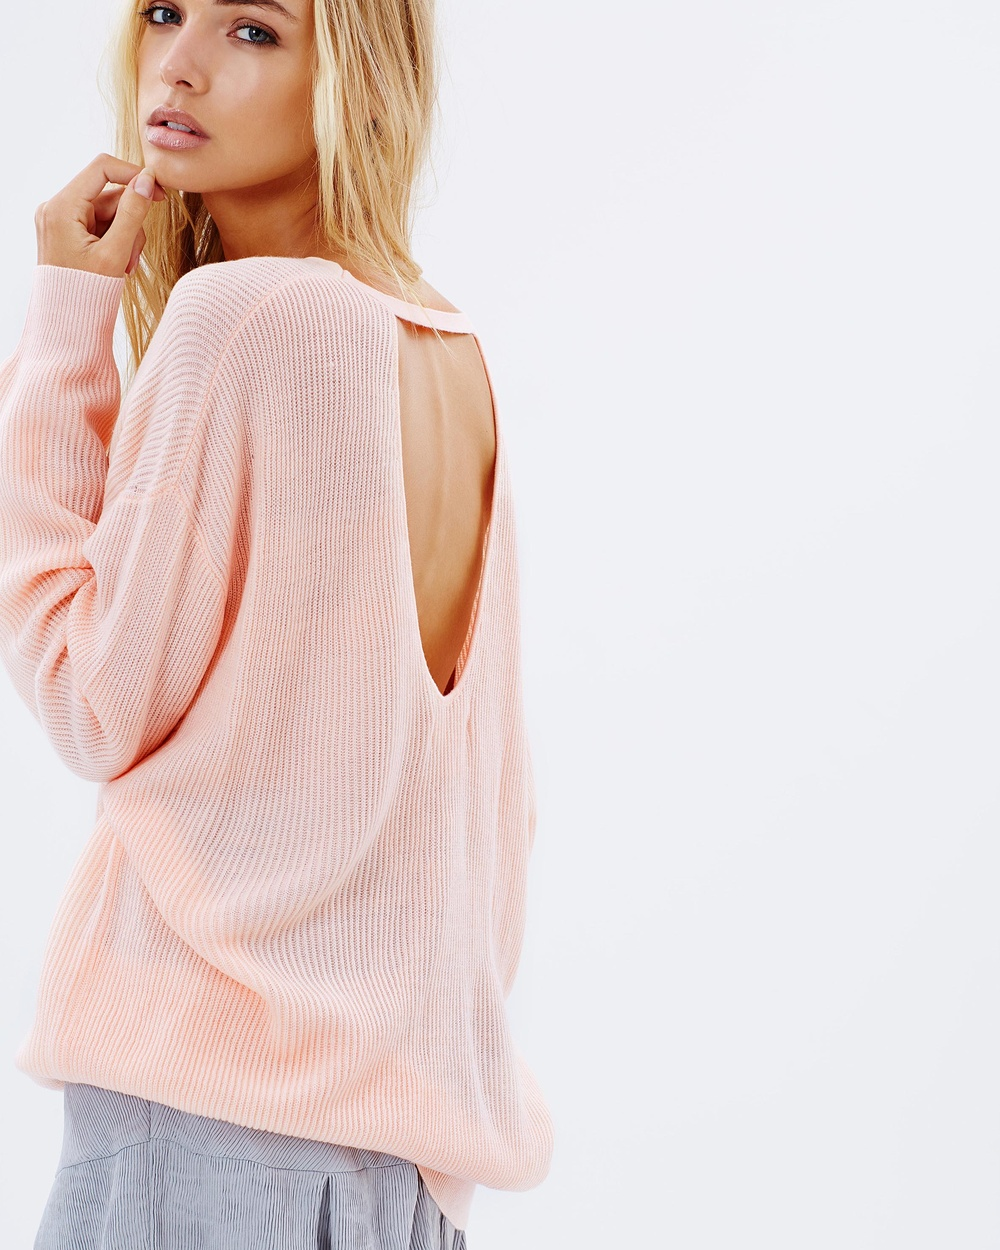 Lulu & Rose Lafayette scoop back knit $89.95